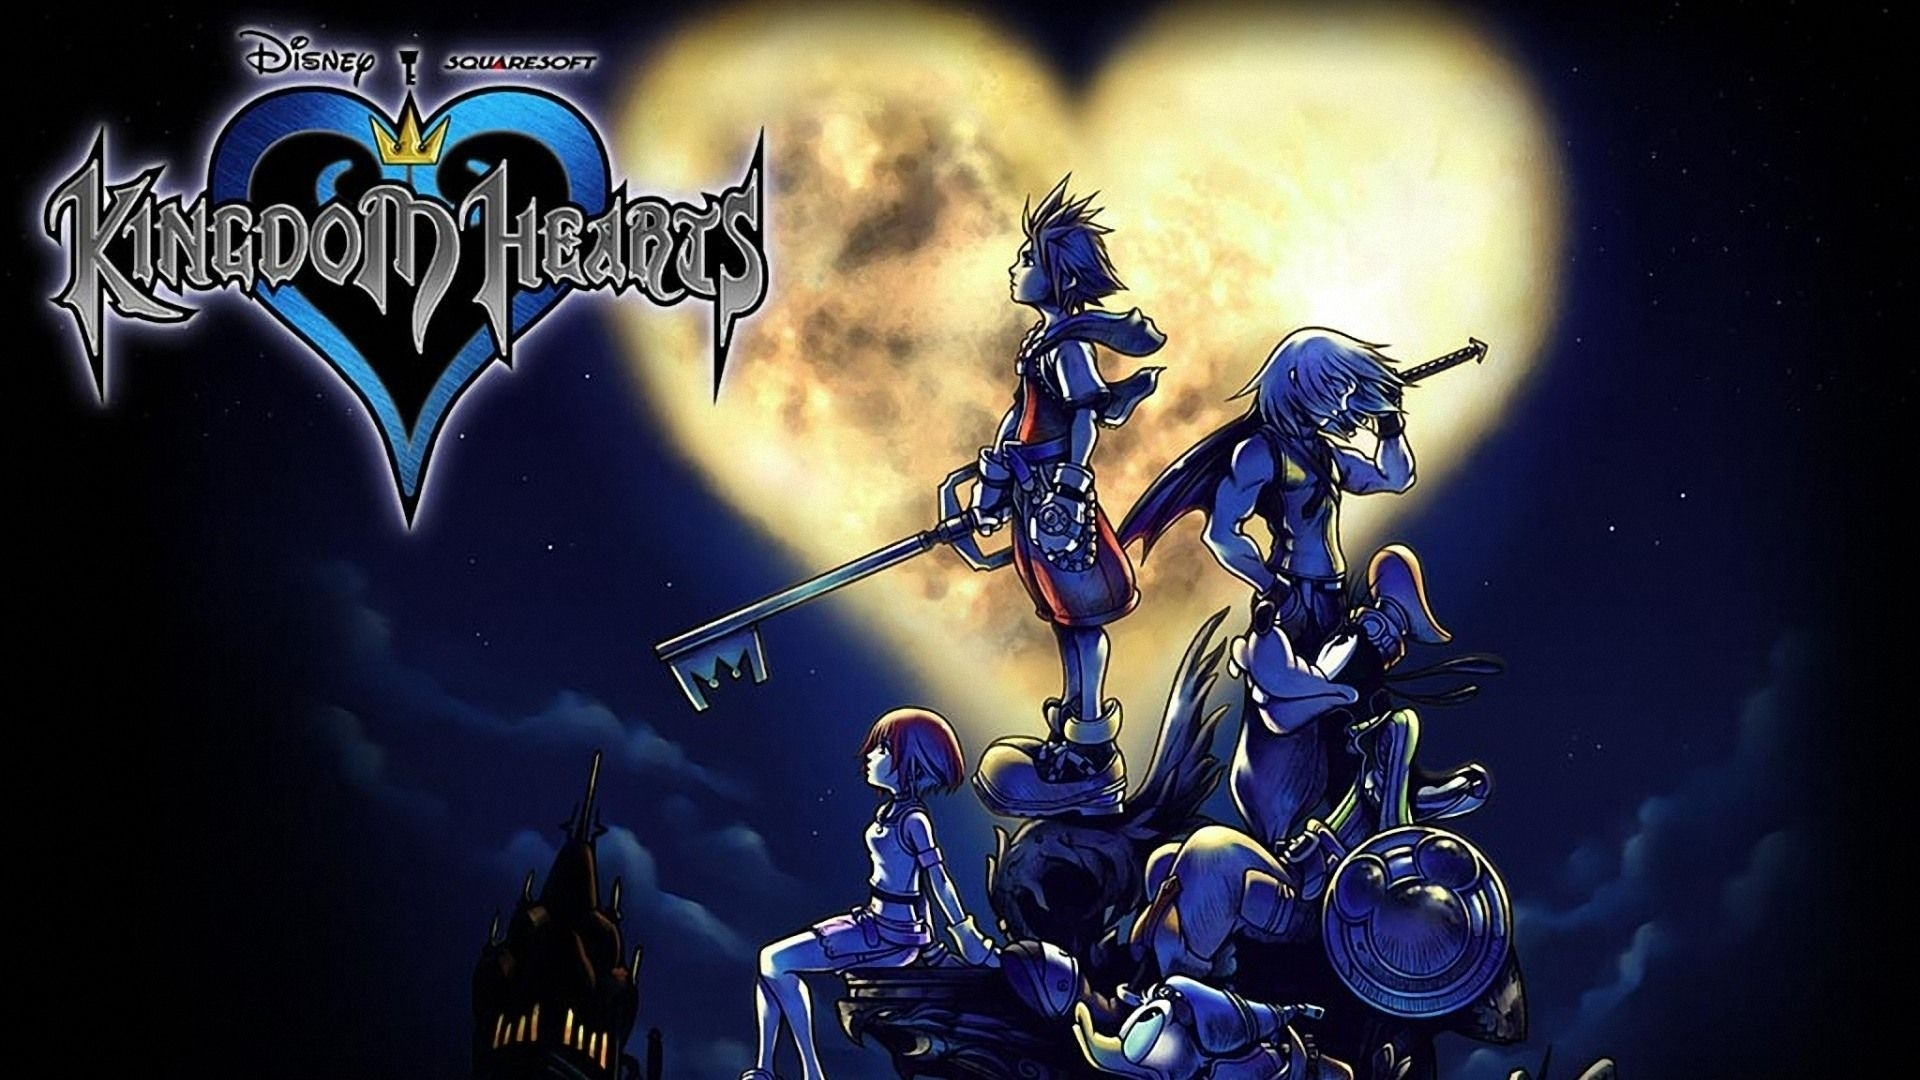 kingdom hearts wallpapers, hd kingdom hearts wallpapers for free